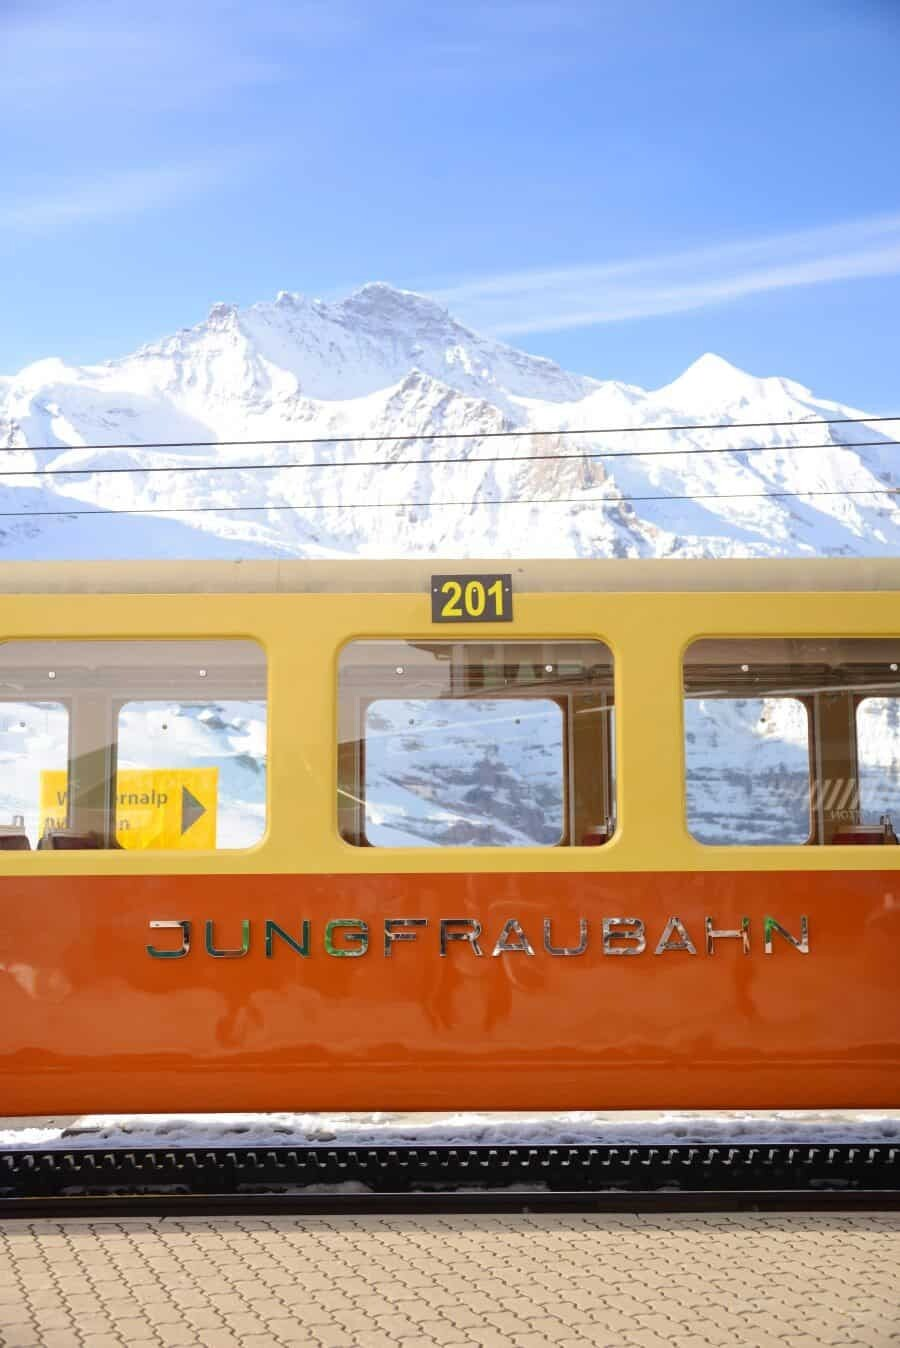 jungfrau-travel-guide-wengen-lauterbrunnen-and-grindelwald-by-the-wandering-lens-11